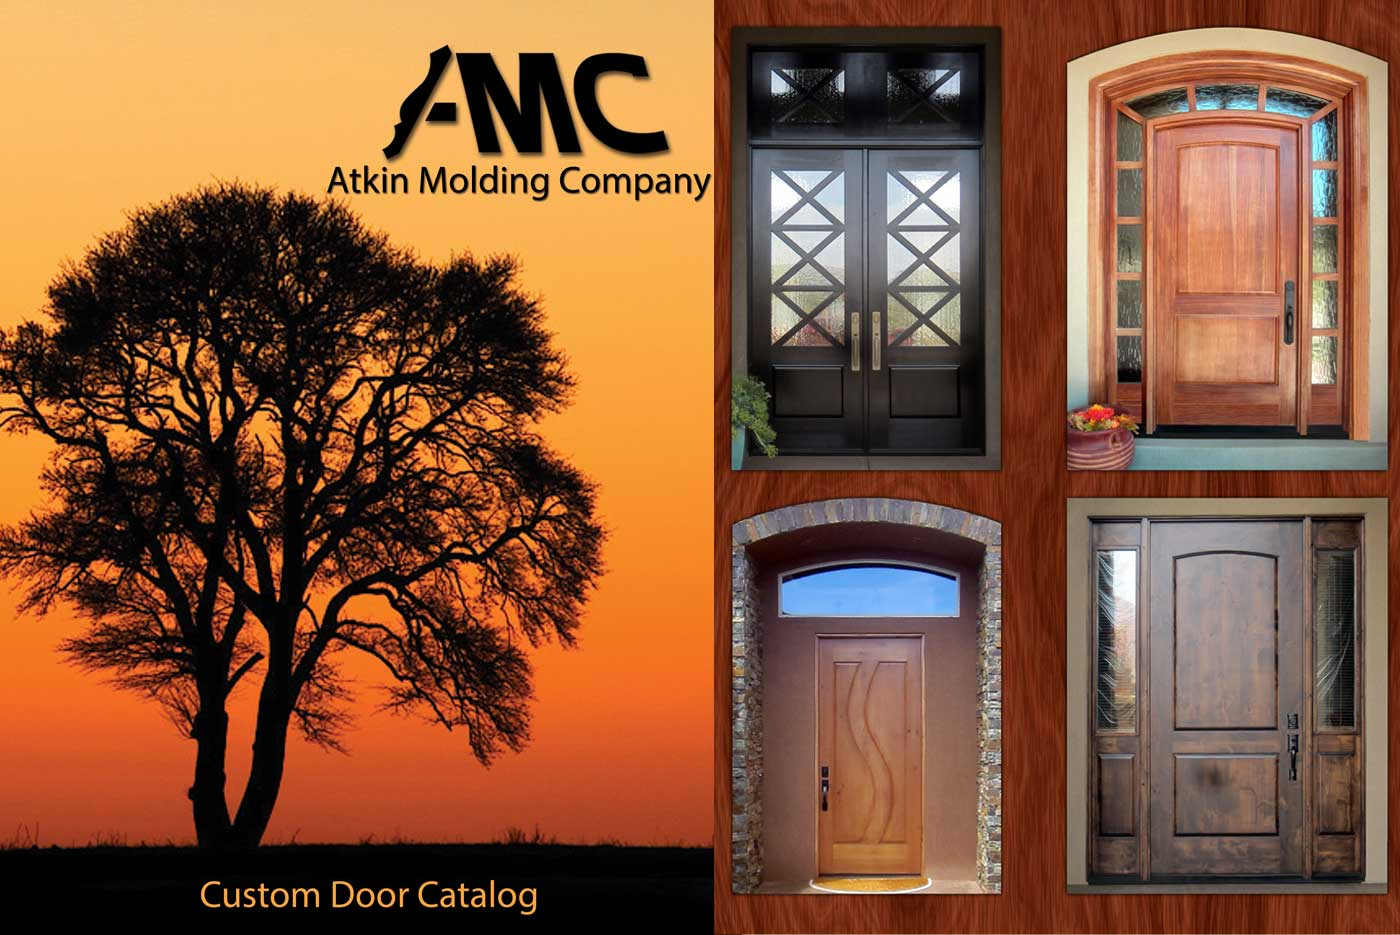 Custom Hardwood Door Catalog & Custom Hardwood Door Catalog Atkin Molding